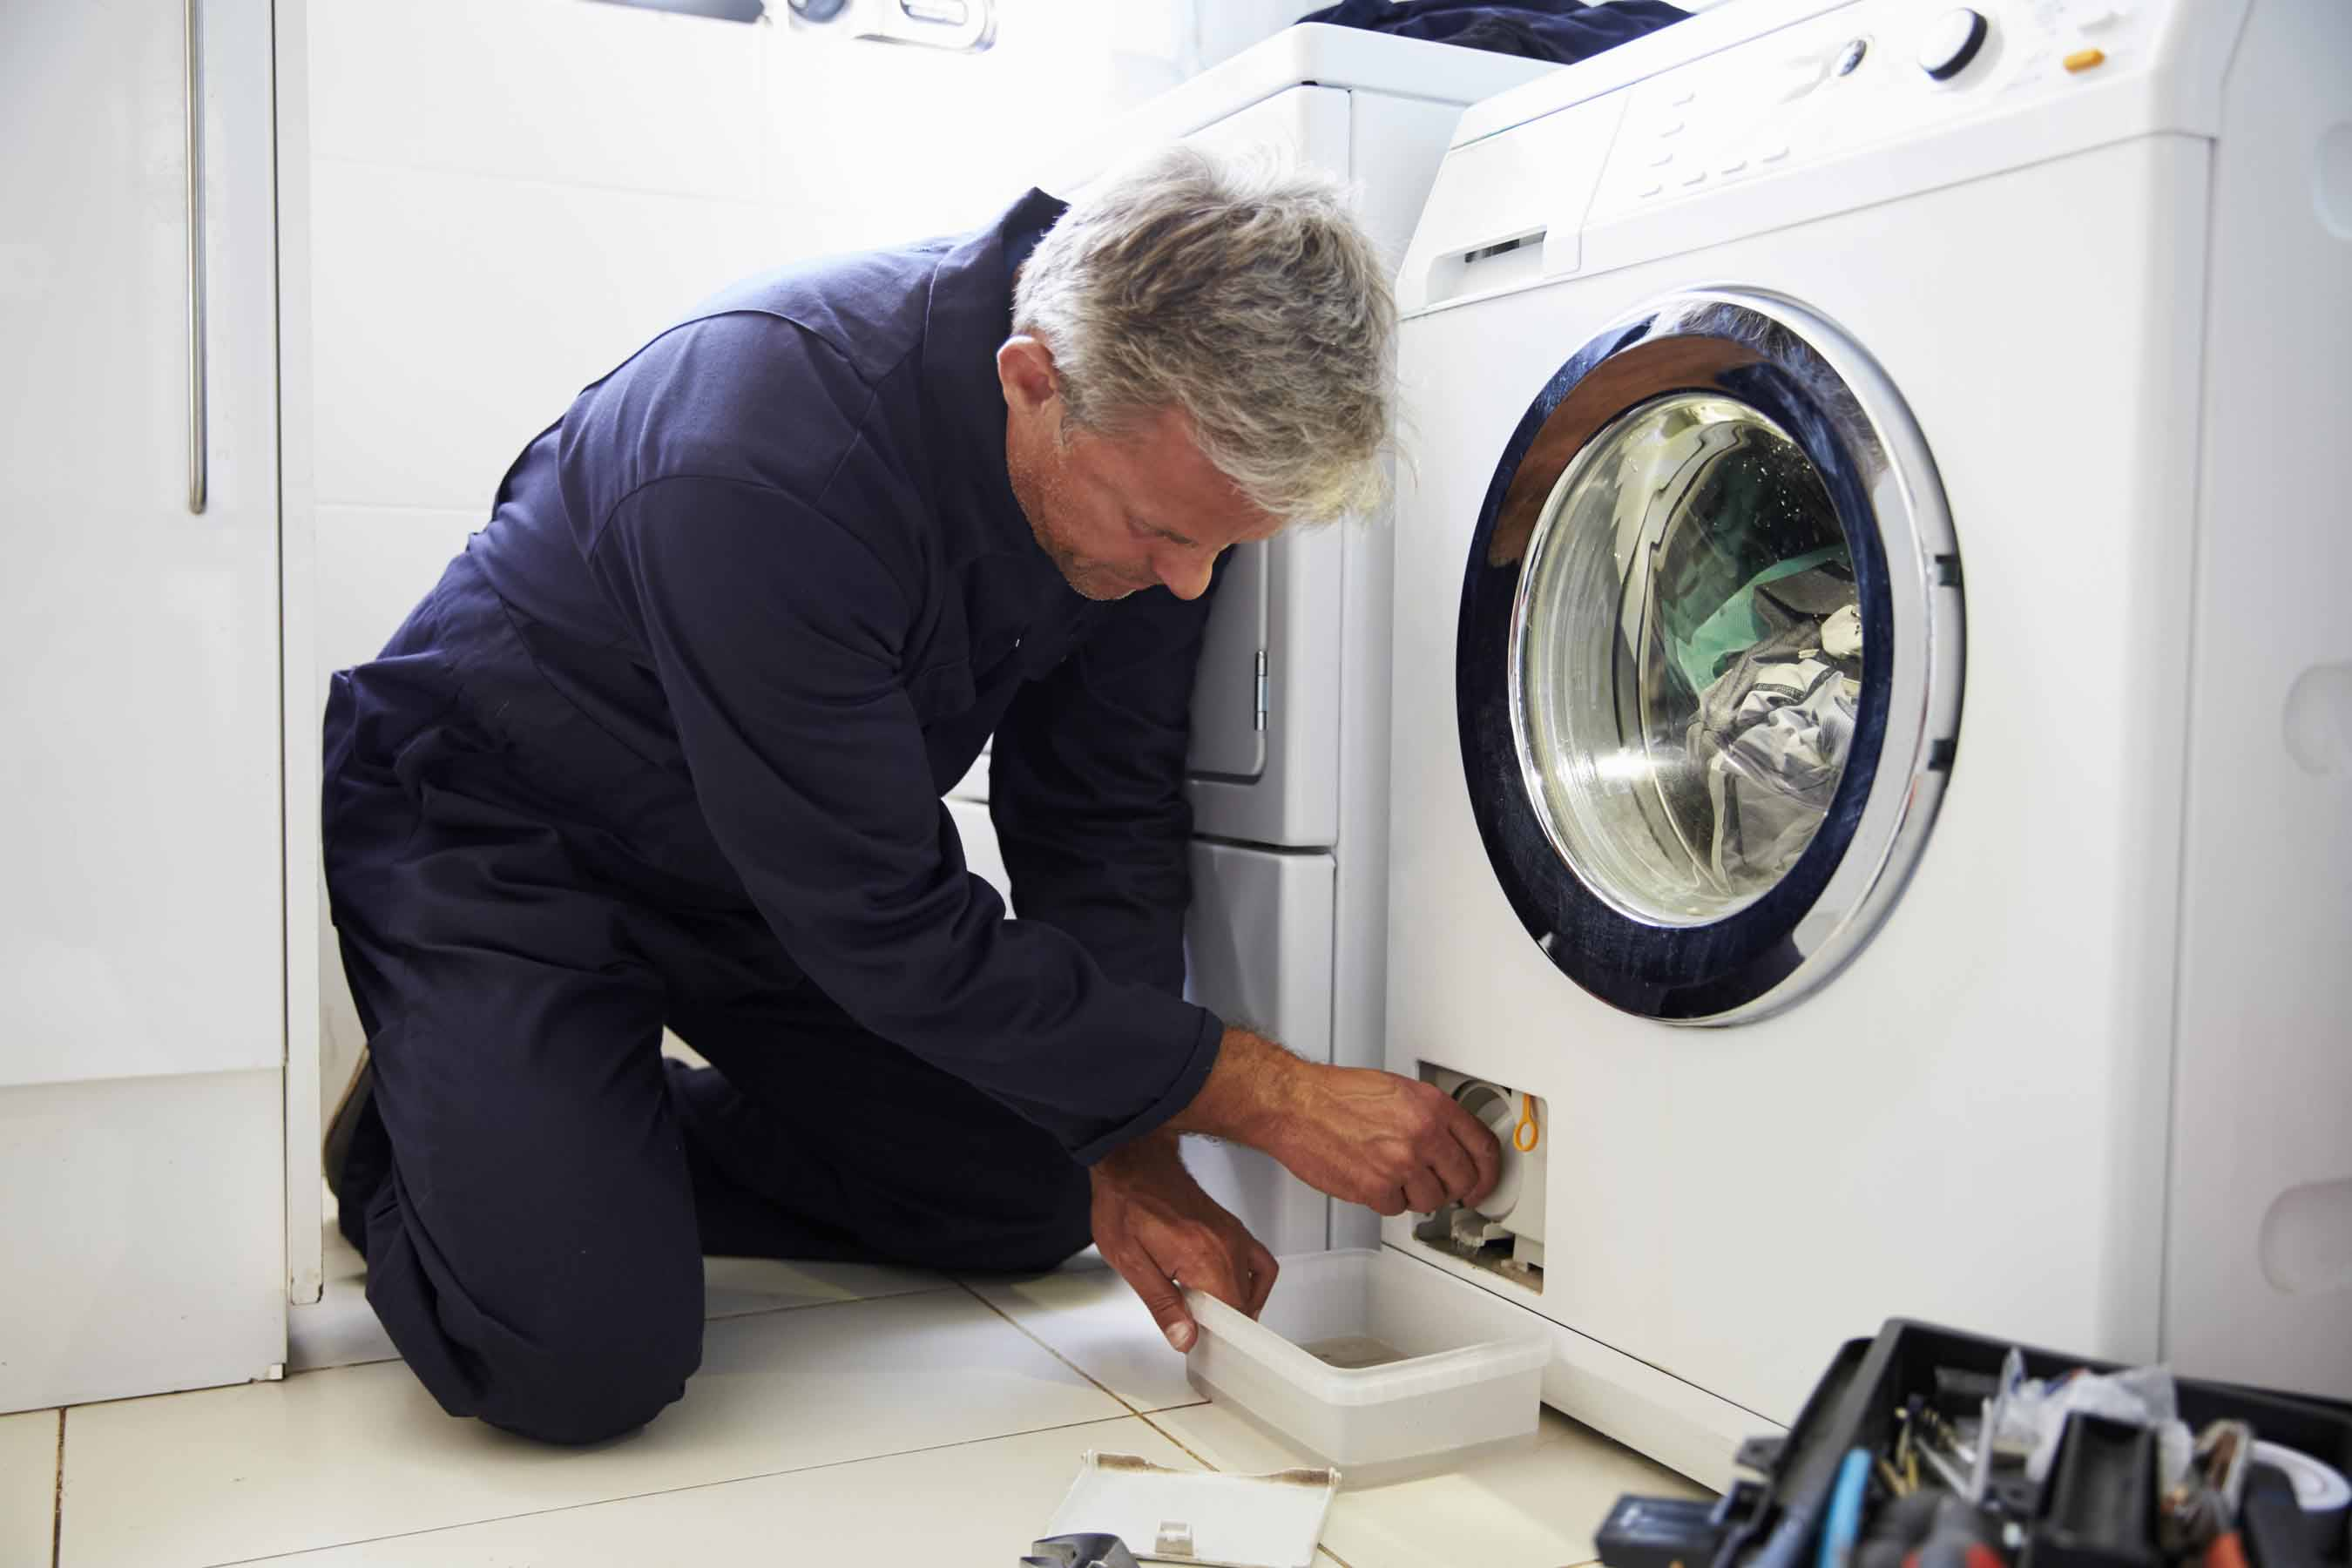 Washing machine technician removing drain filter